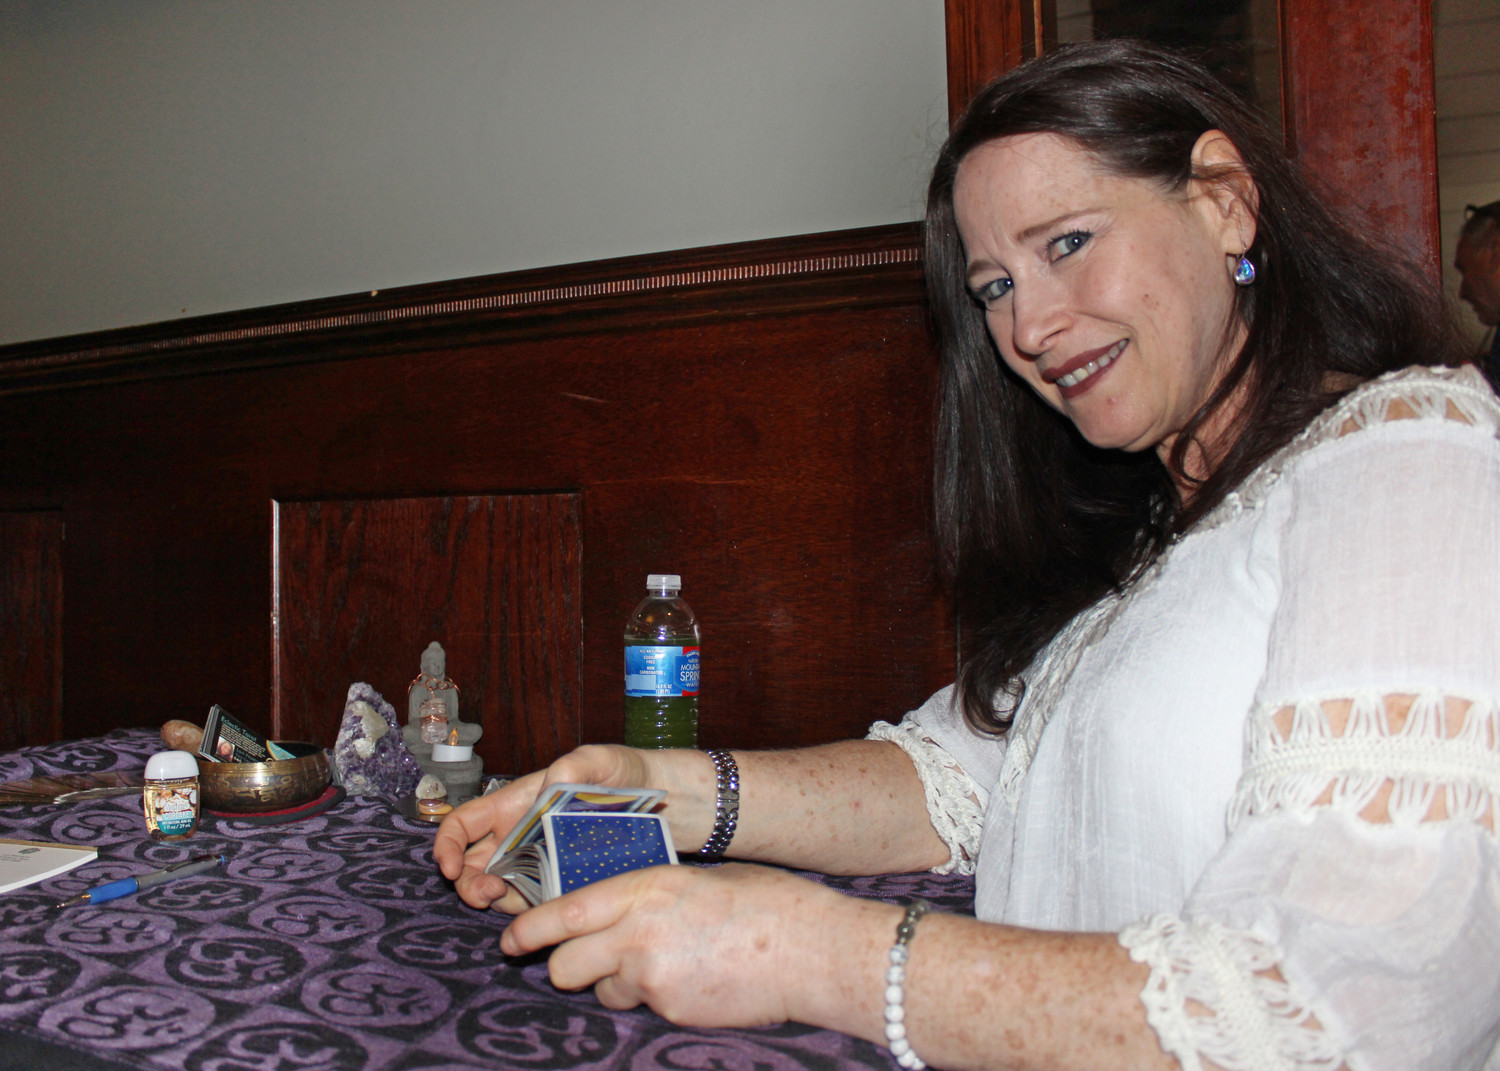 Tarot card reader Lori Nostramo prepared to engage in a spiritual experience with guests at Psychic Night on Aug. 20 at Borrelli's Italian Restaurant in East Meadow.